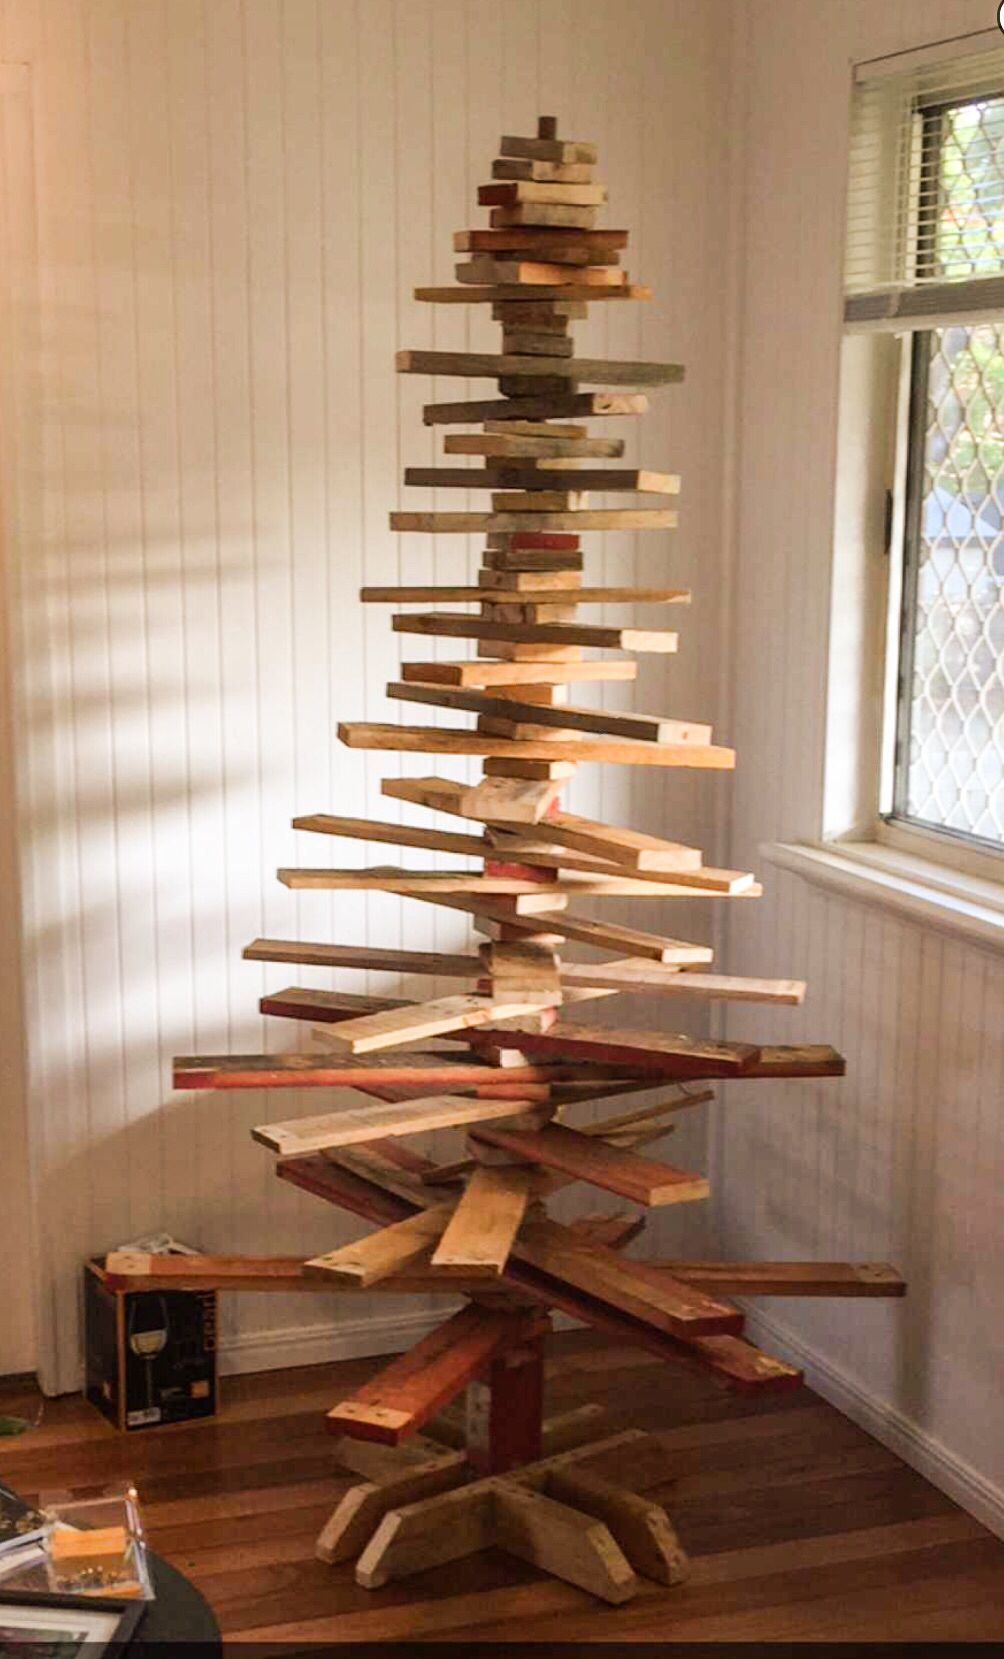 Pallet Timber Christmas Tree Made From Recycled Timber Pallets This Raw Finish Creates Mo Fun Christmas Decorations Wooden Christmas Trees Wood Christmas Tree